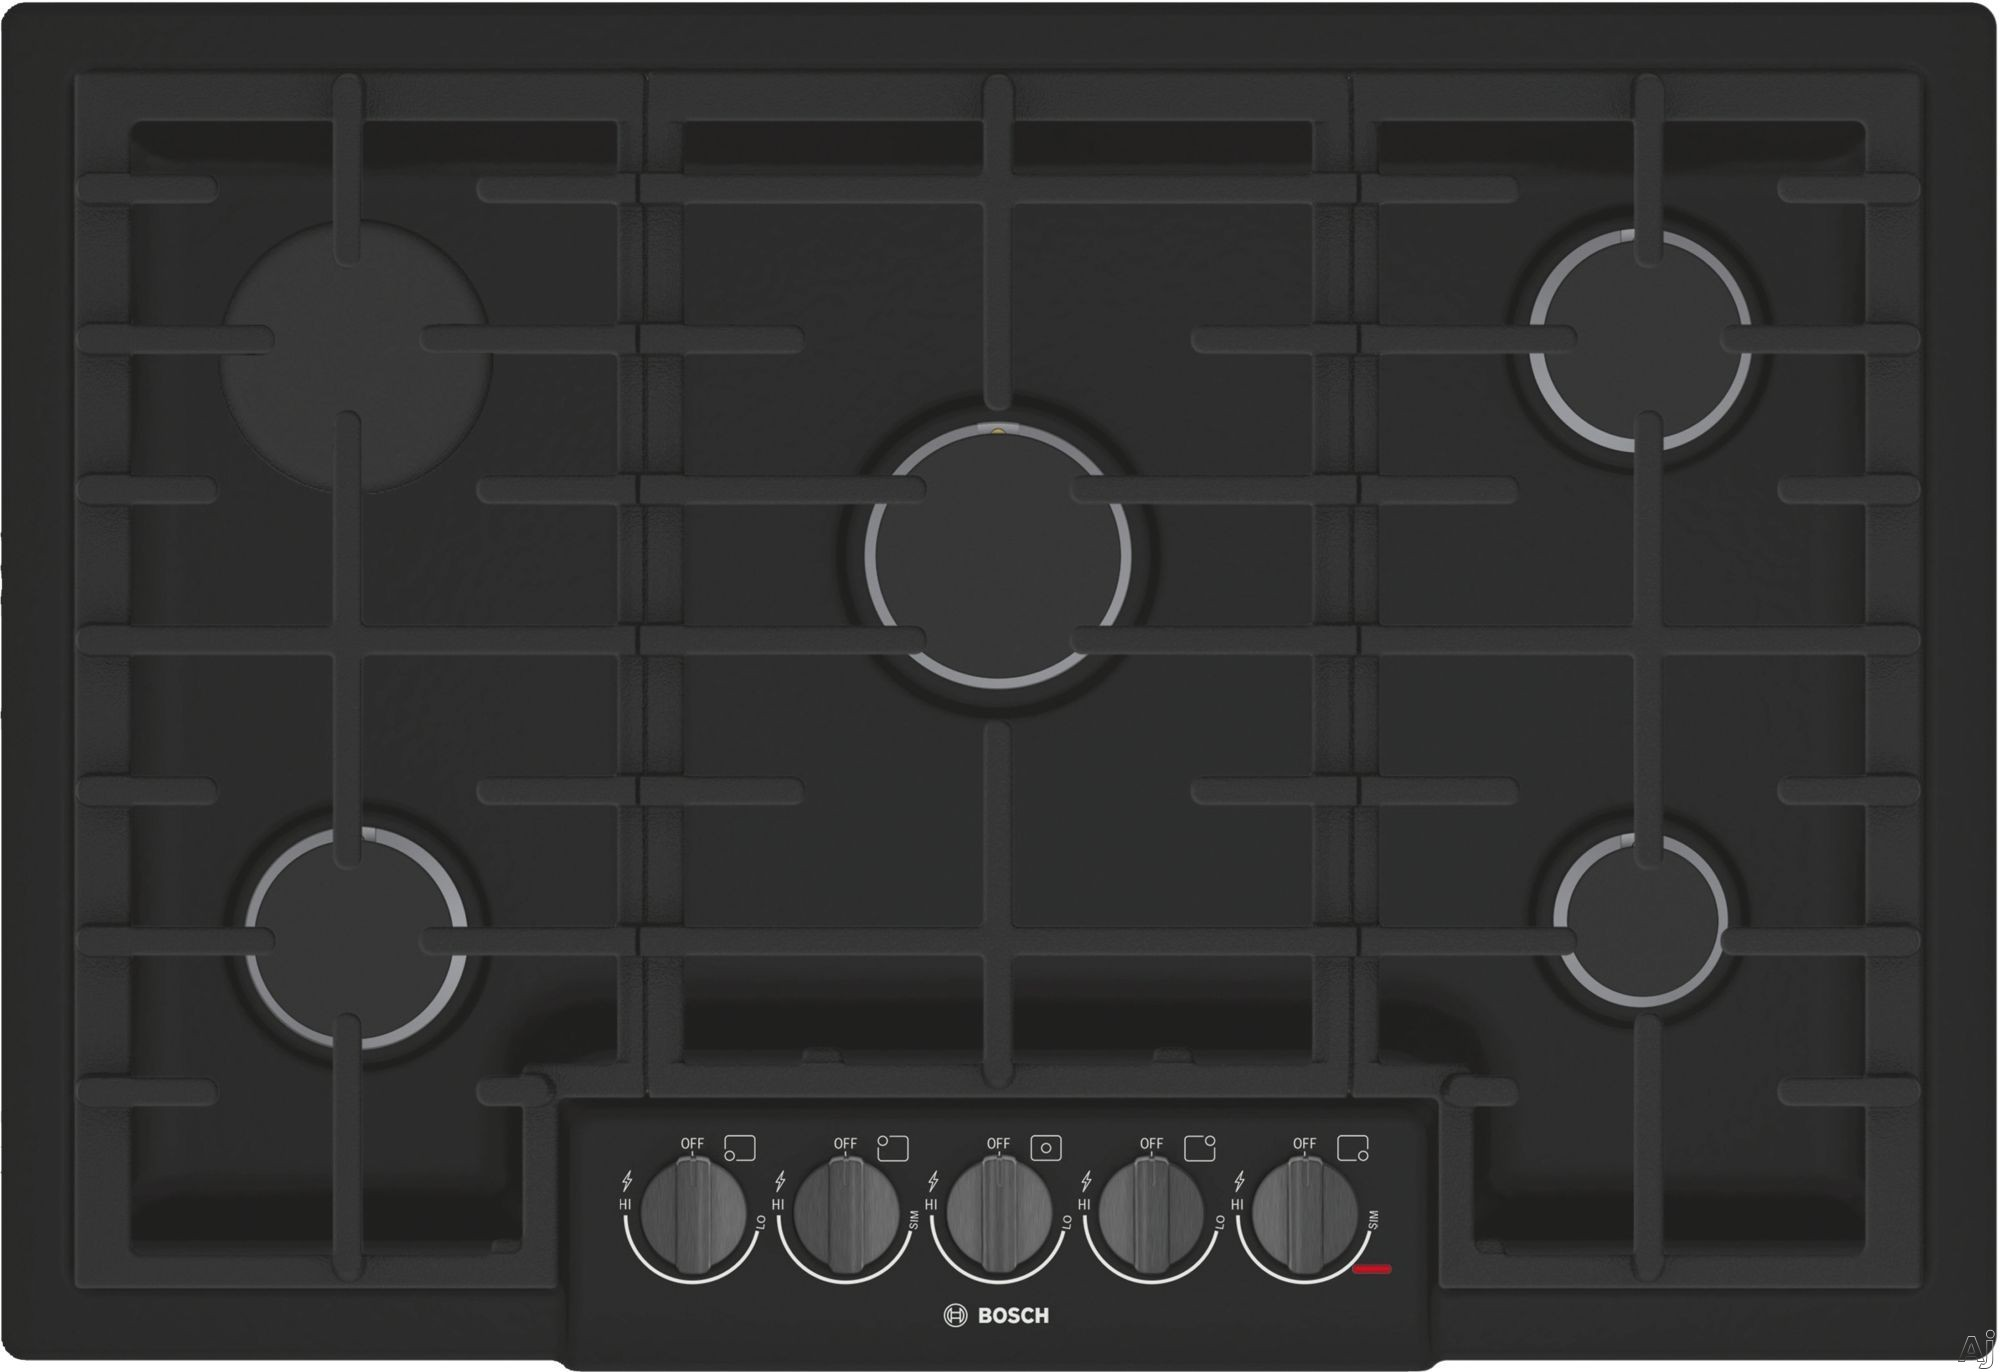 Bosch 800 Series NGM8046UC 30 Inch Gas Cooktop with OptiSim® Burner, Black Stainless Knobs, Red LED Indicator Lights, Electronic Re-Ignition, 5 Sealed Burners and STAR-K Certified